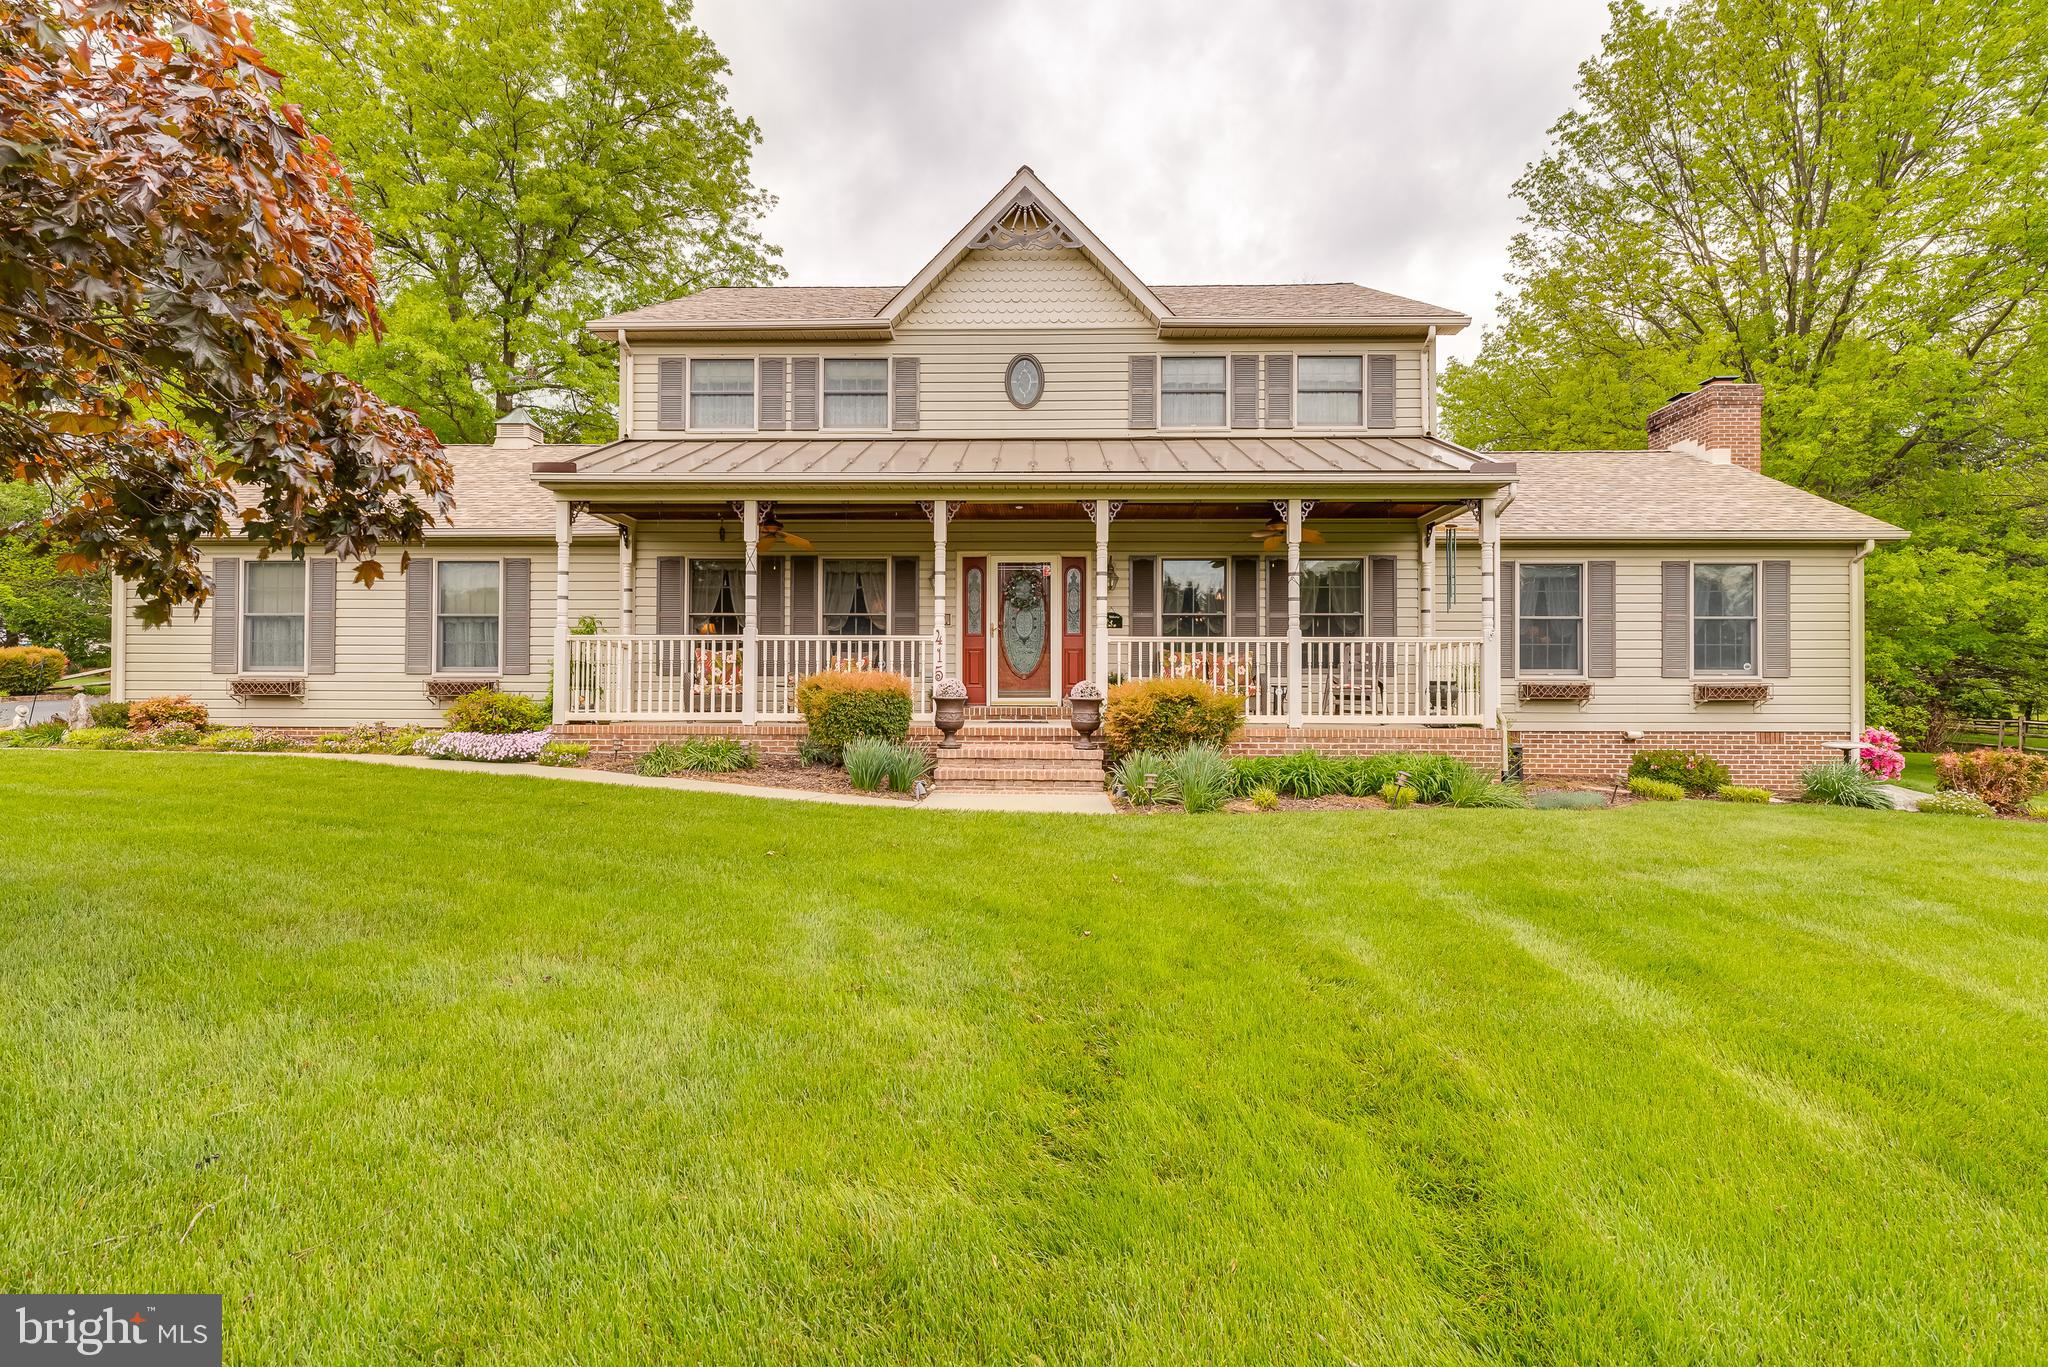 Be the second owner in this beautiful two story colonial situated on over an acre!  This home has be